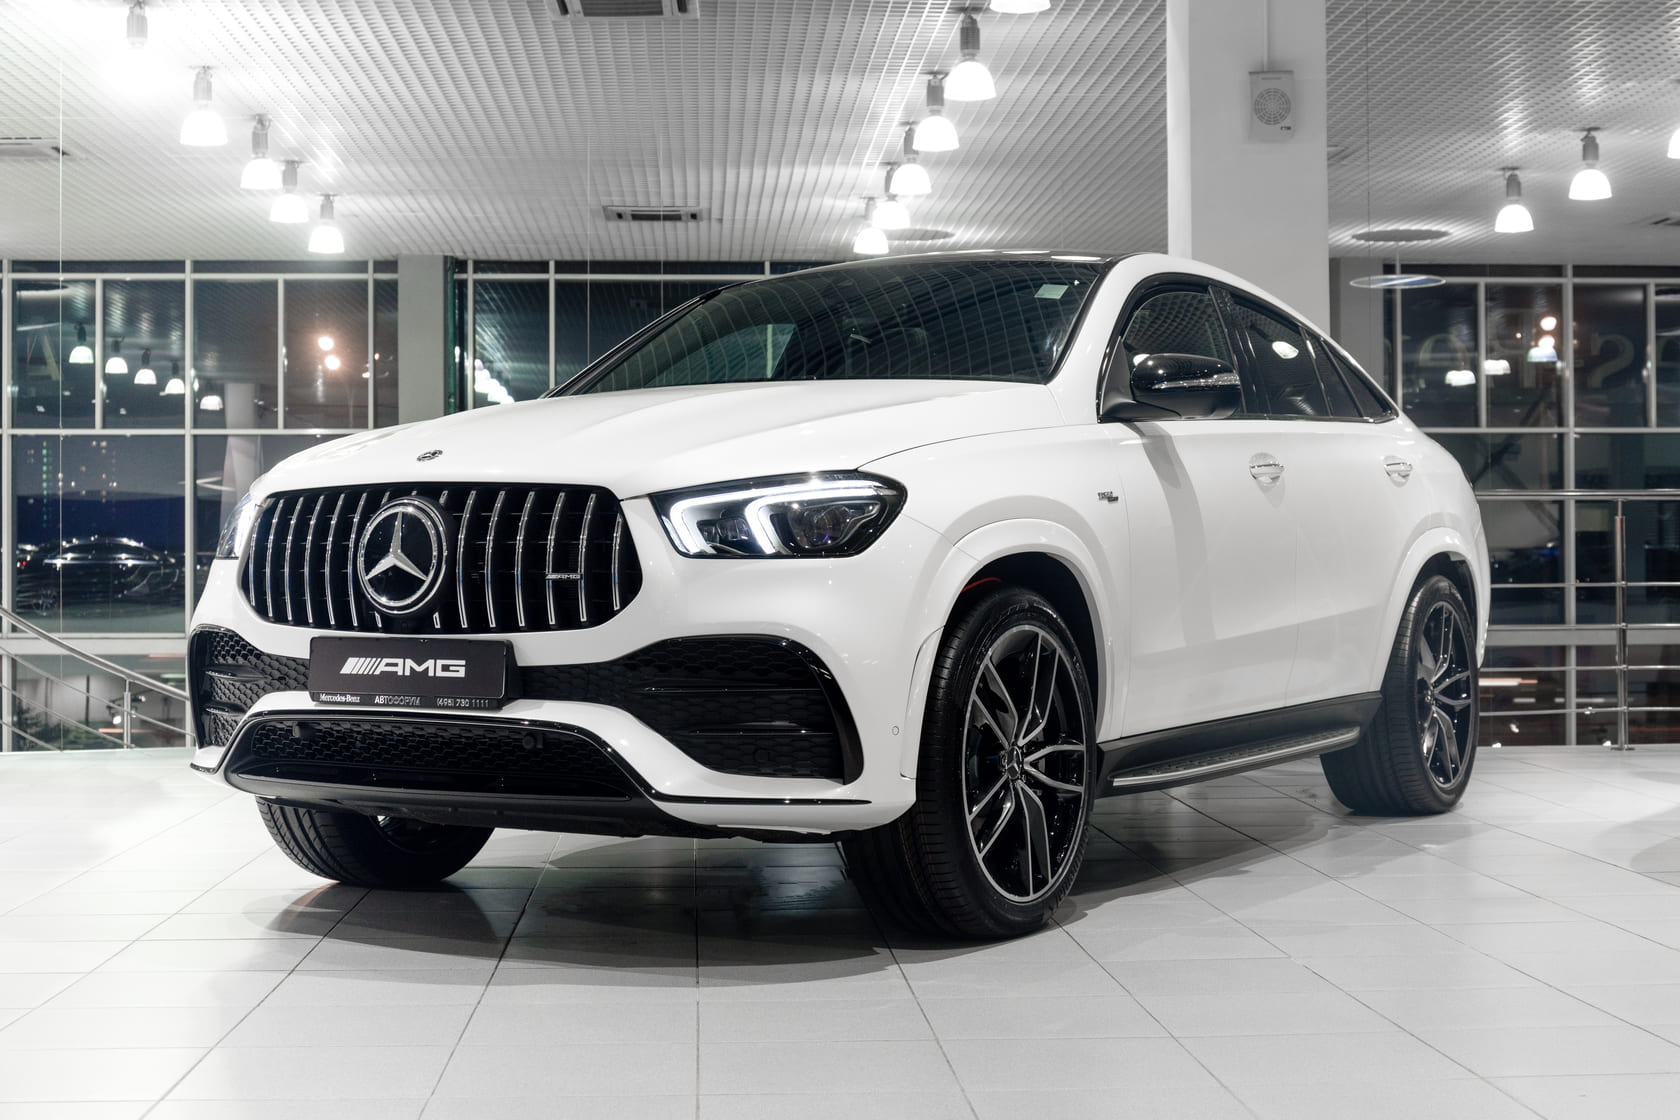 GLE 53 Coupe AMG 3.0T/435 9AT 5D